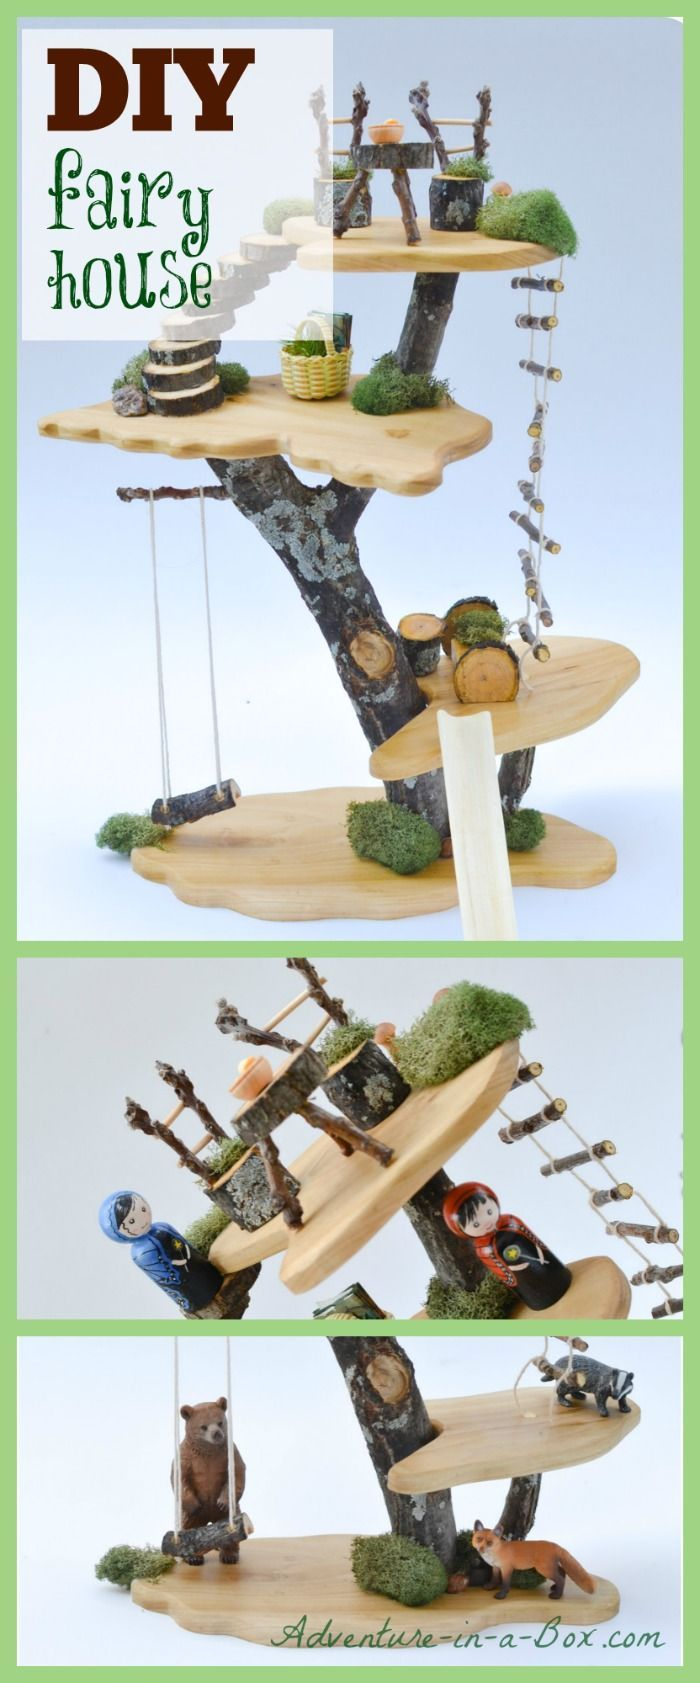 How to make a toy tree house with simple tools and natural materials. Invite fairies to live in your children's playroom! Perfect for Waldorf environment.